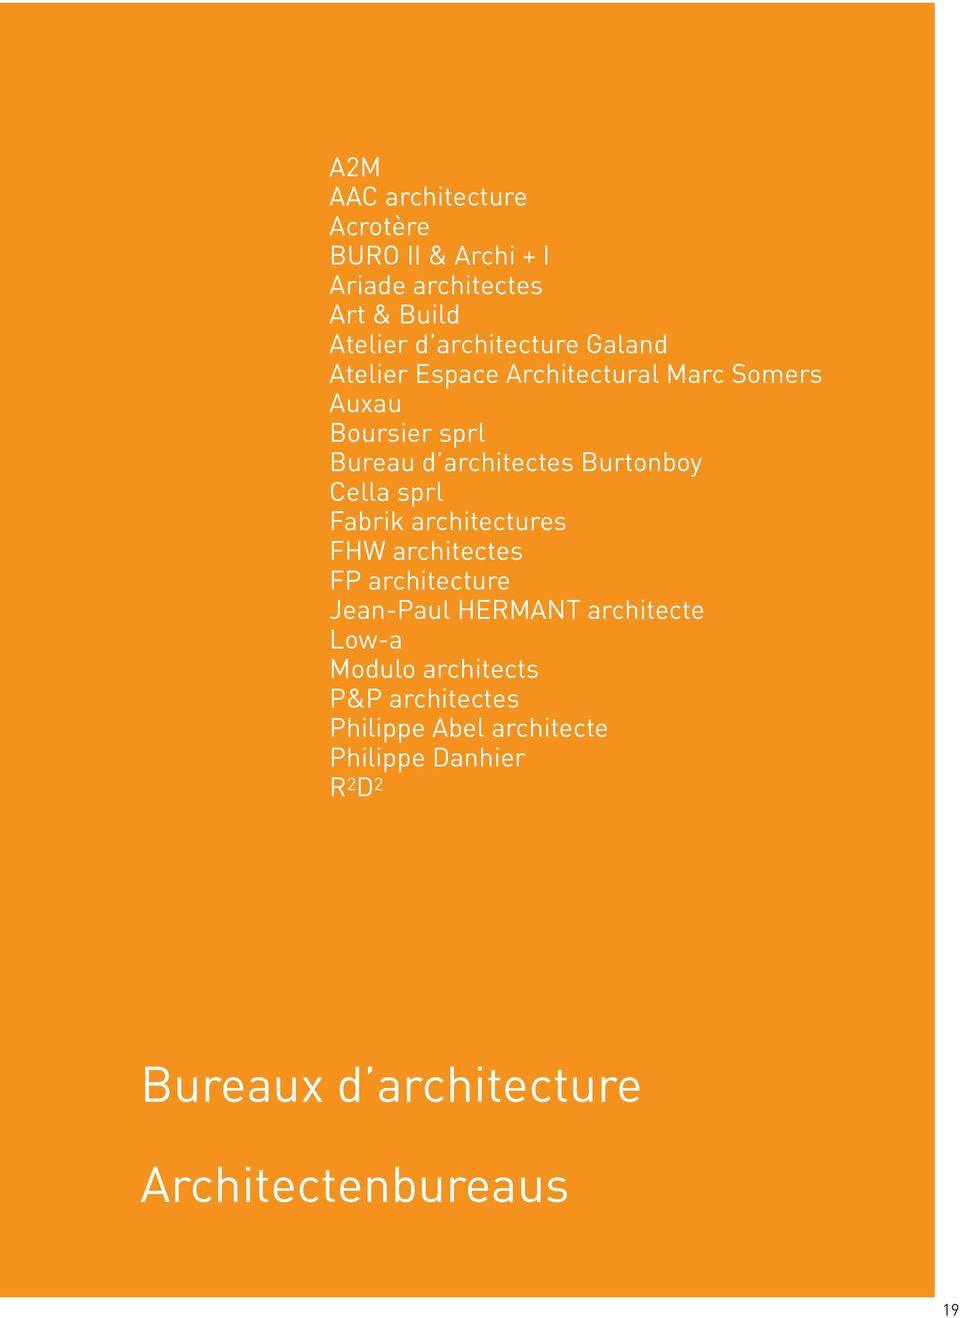 Burtonboy Cella sprl Fabrik architectures FHW architectes FP architecture Low-A Jean-Paul architecture HERMANT architecte Modulo Low-a architects P&P